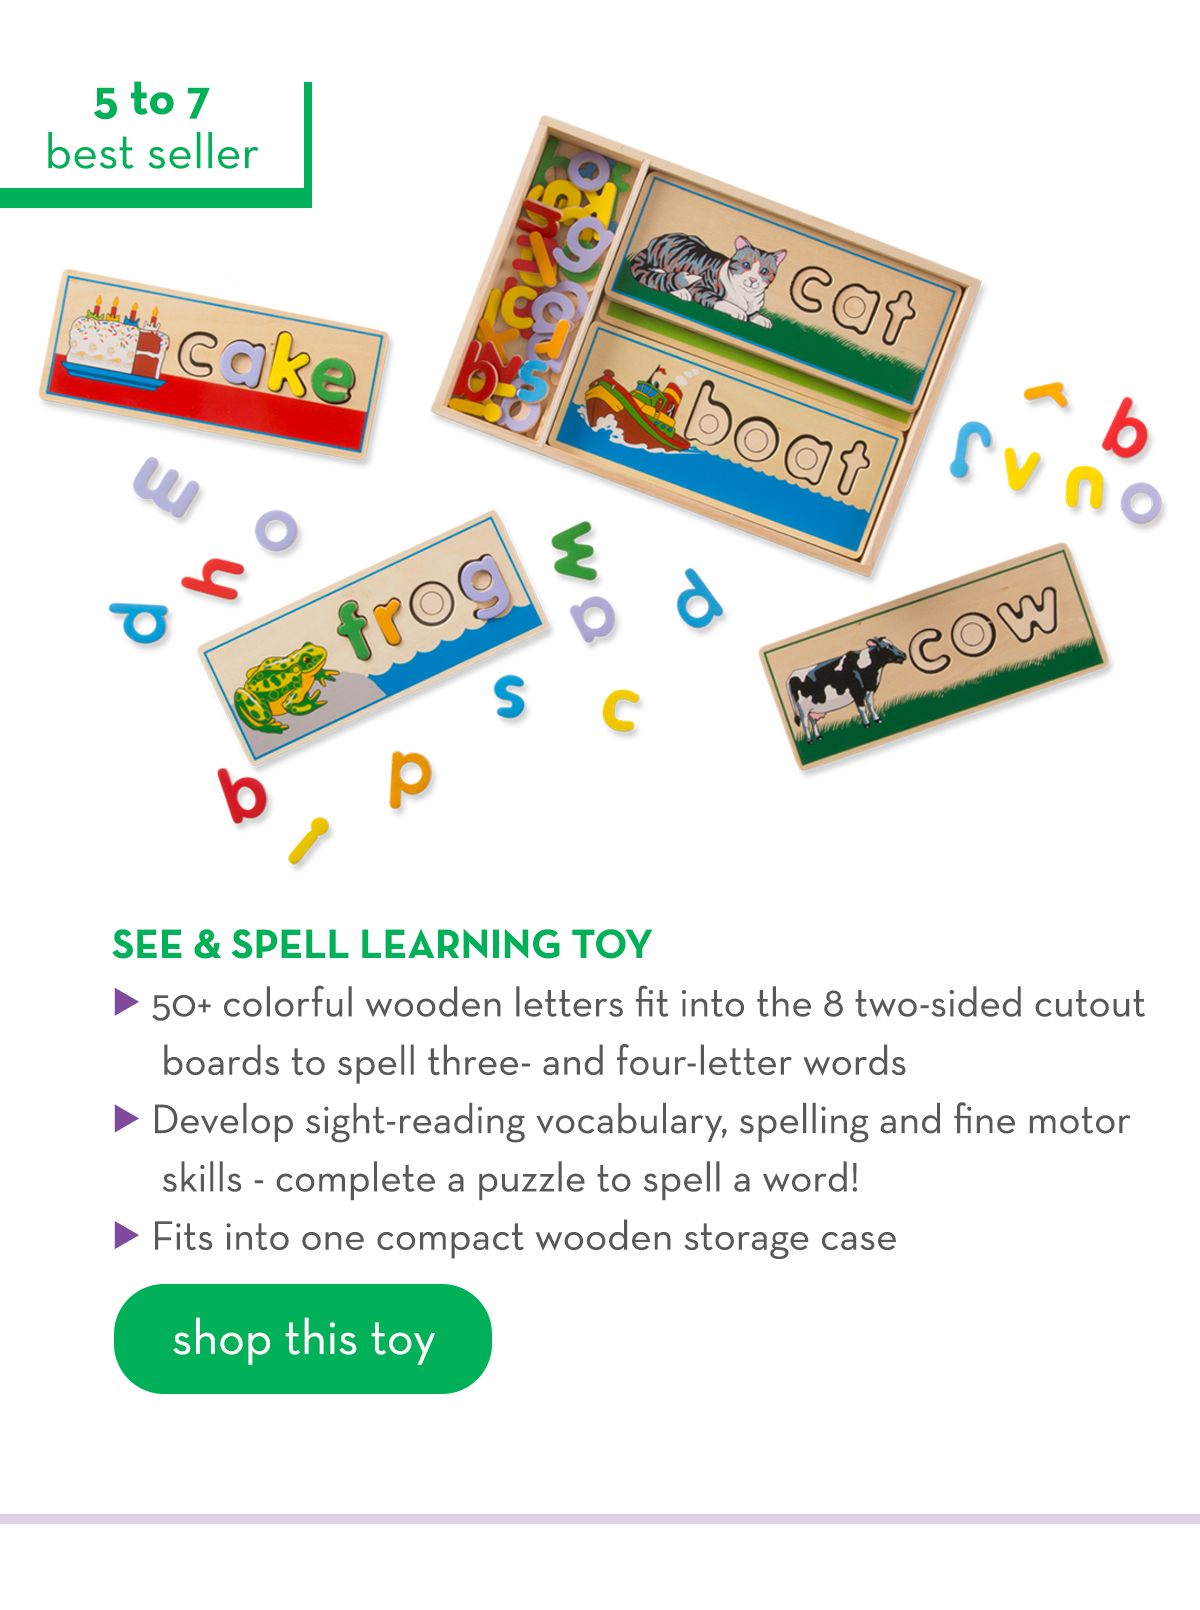 5 to 7 Best Seller - See & Spell Learning Toy